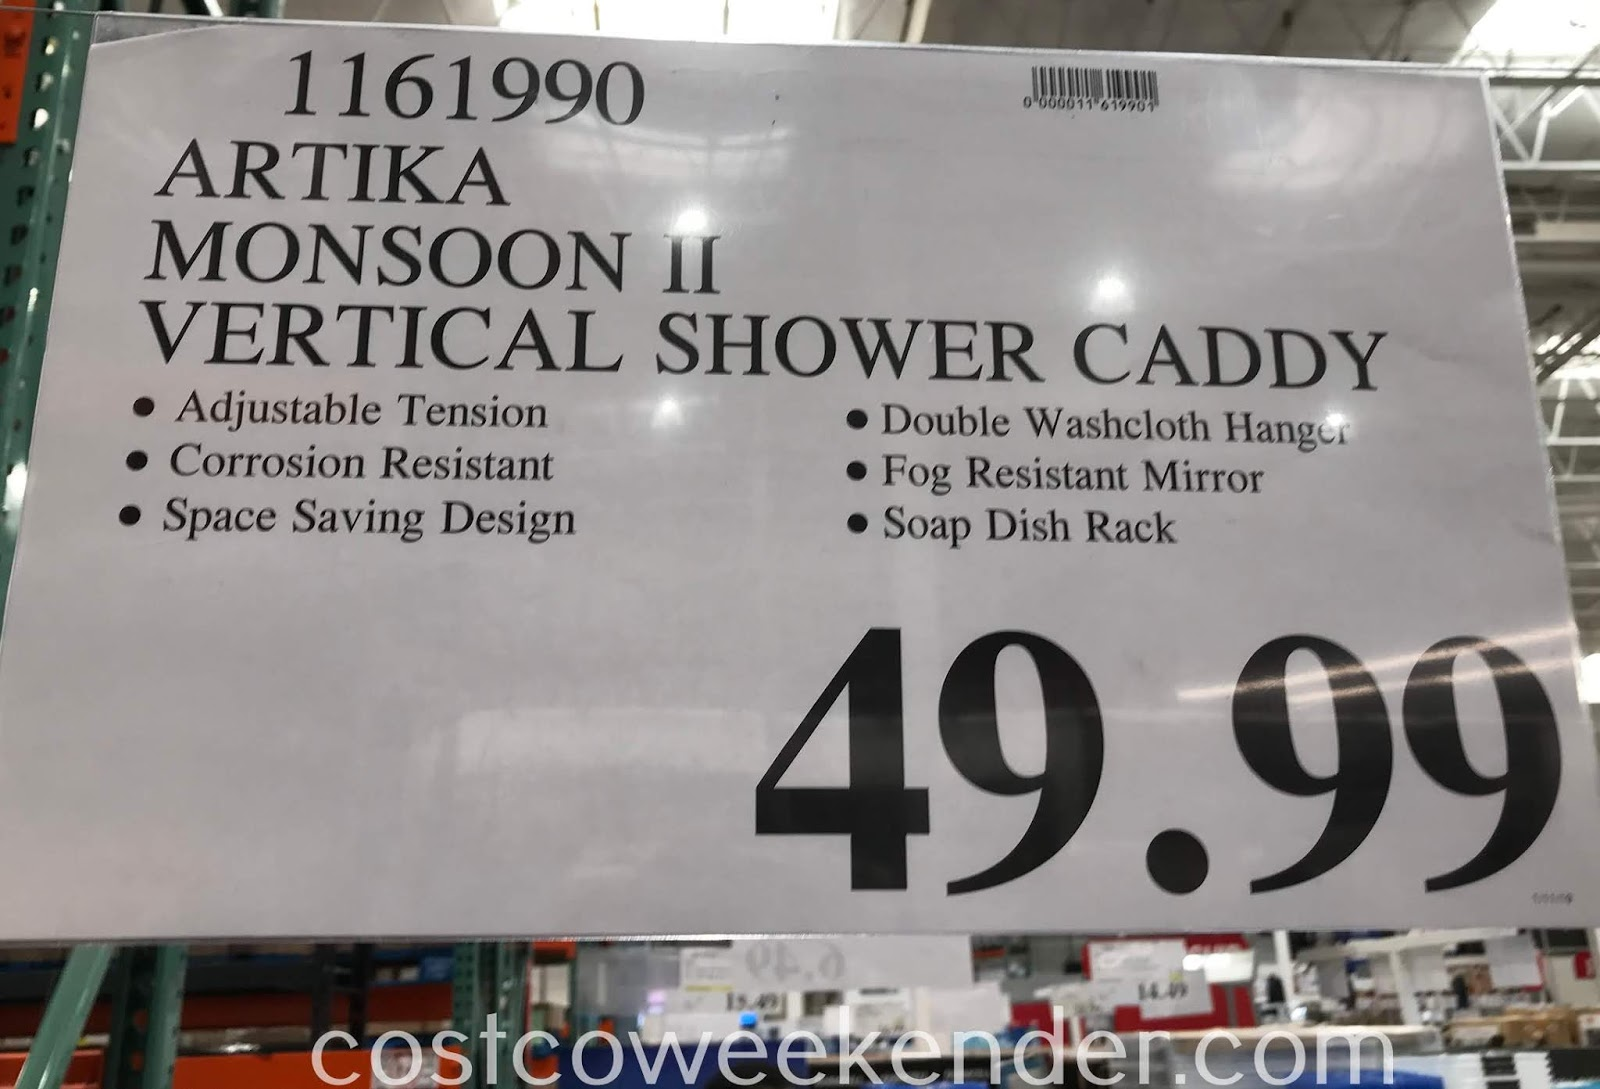 Deal for the Artika Monsoon 2 Shower Caddy at Costco